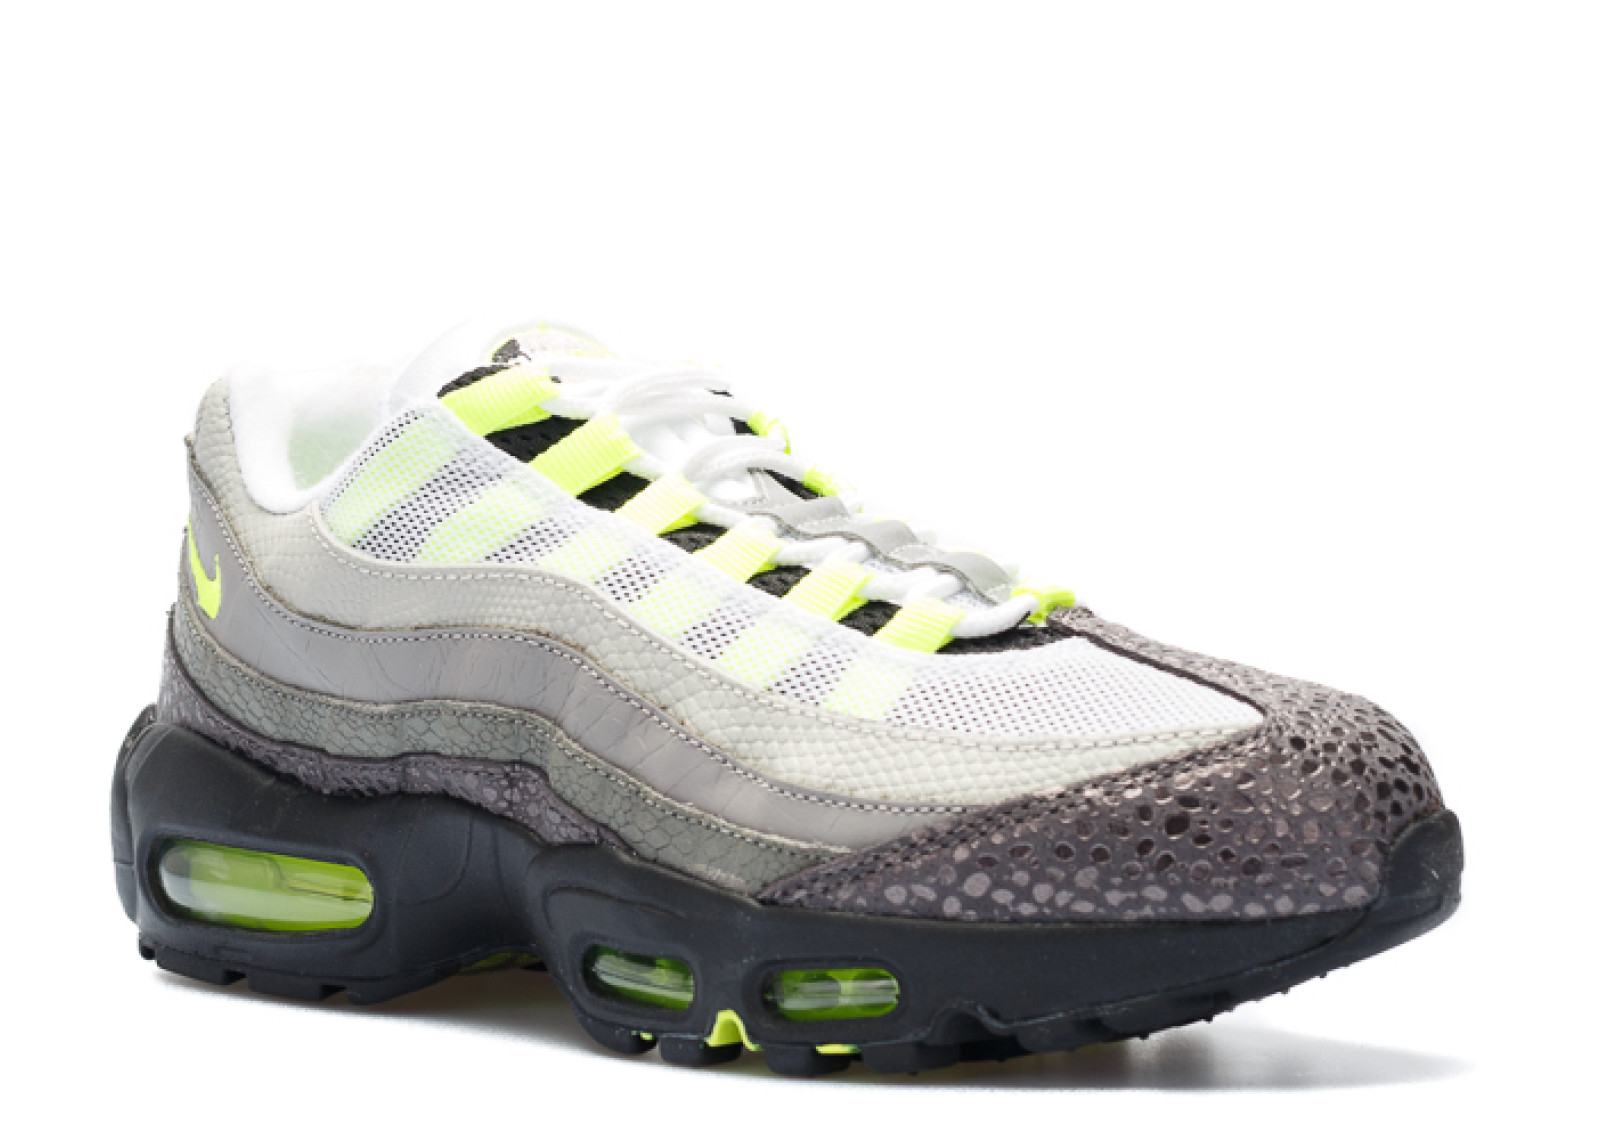 low priced 0d385 24719 Nike Air Max 95 Neon Safari - 1